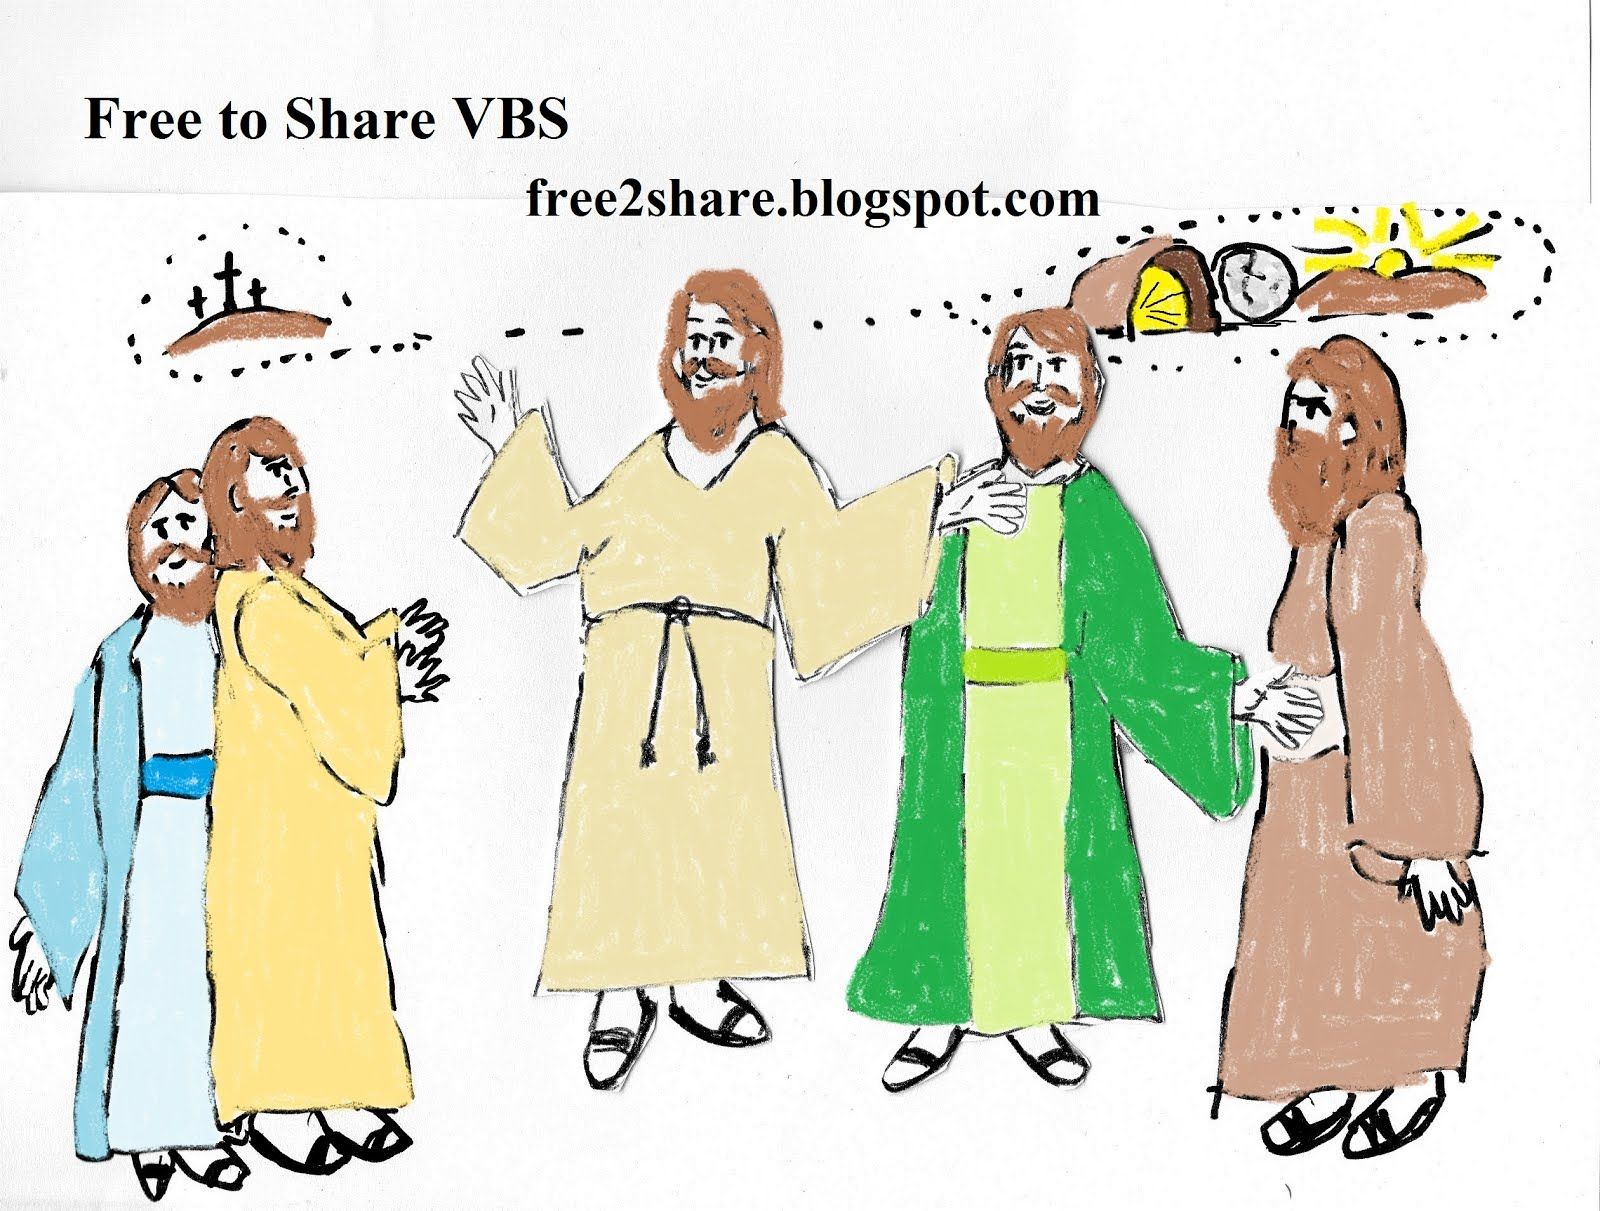 Free 2 Share VBS